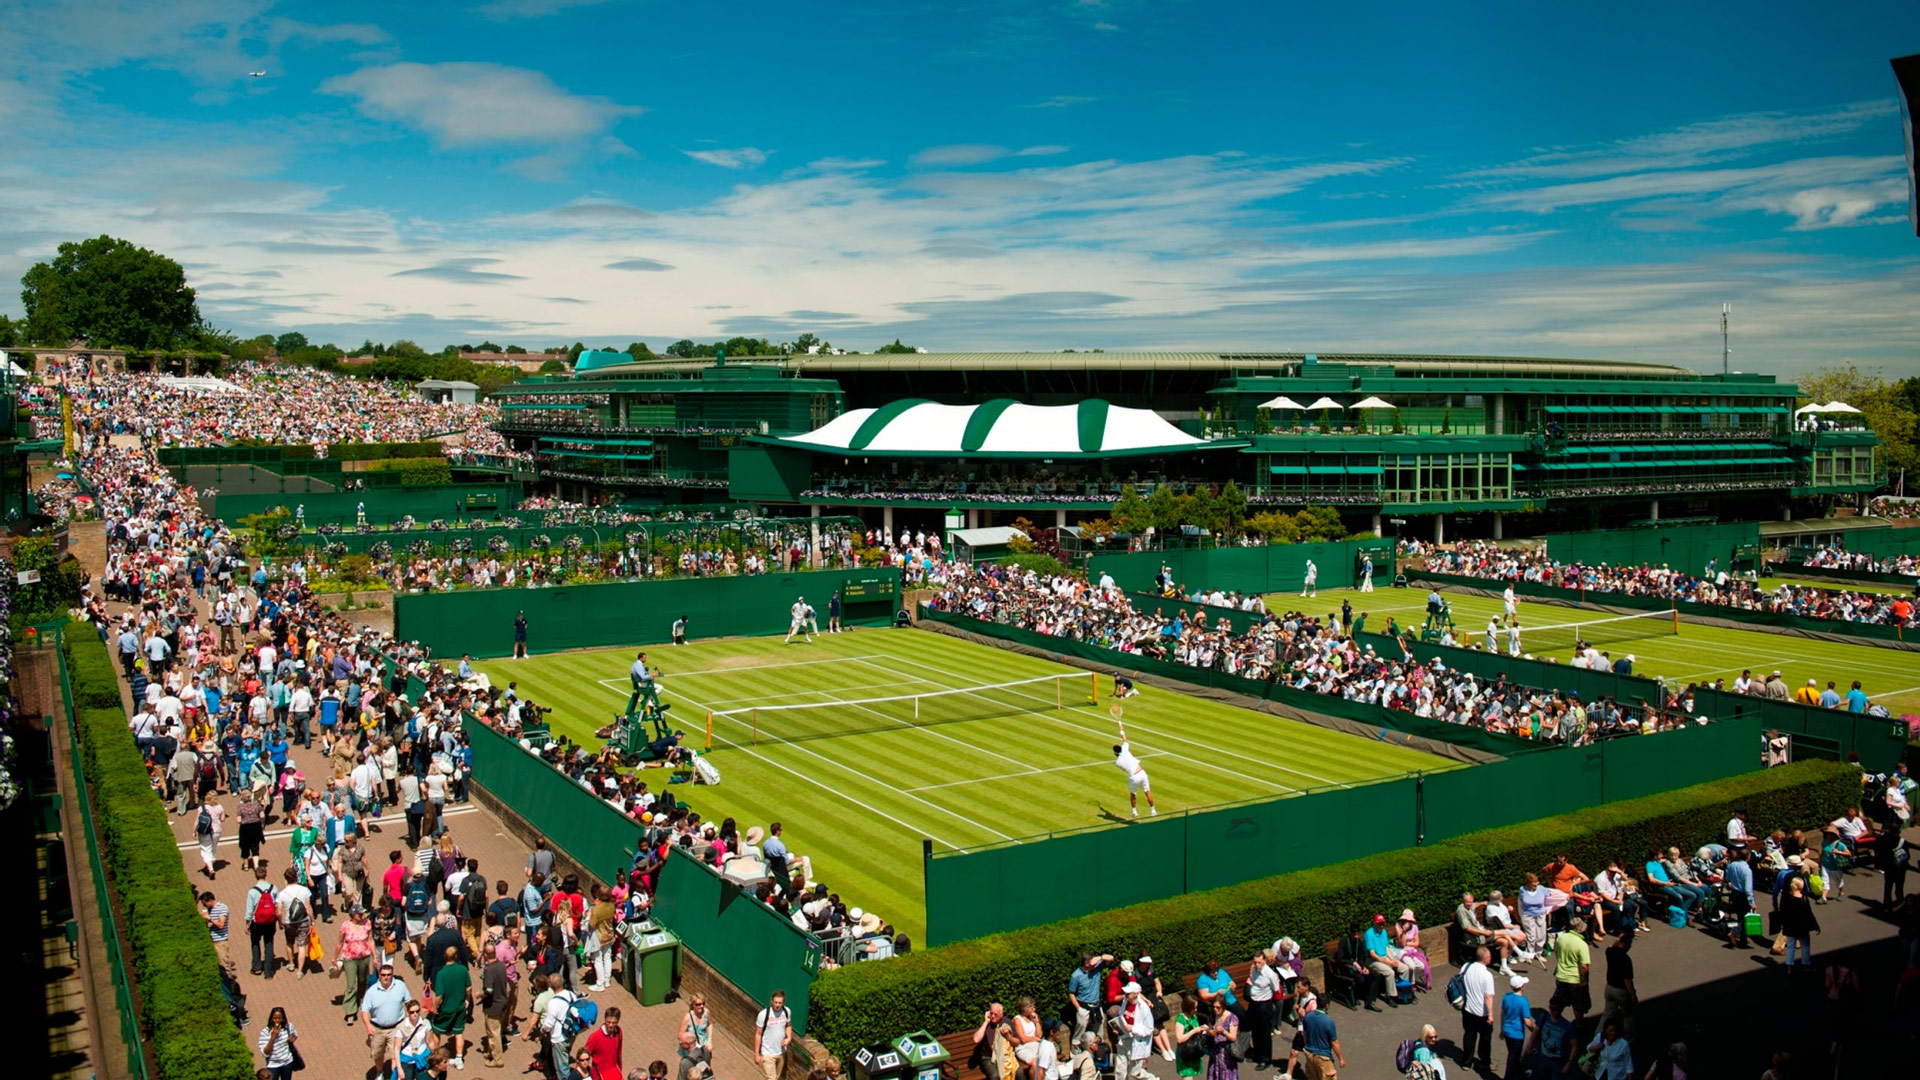 Wimbledon - All England Lawn Tennis and Croquet Club